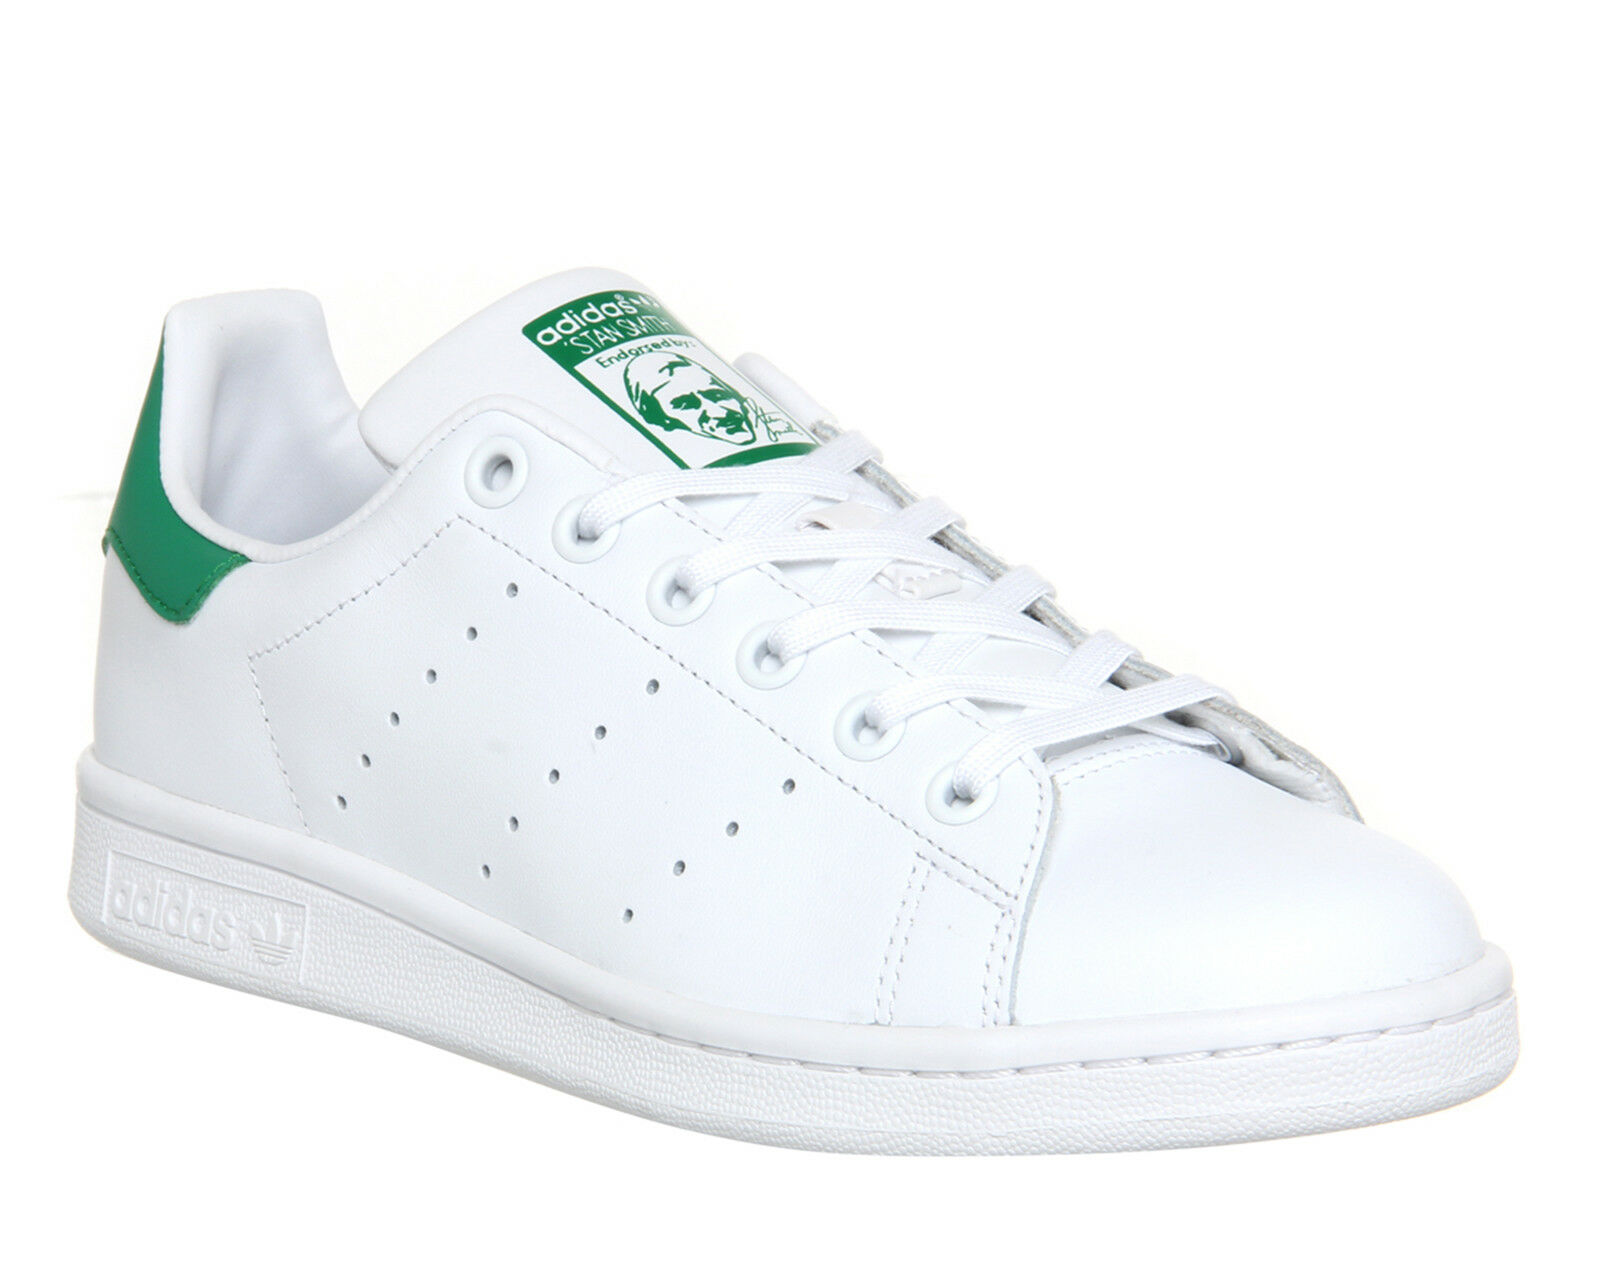 Adidas Stan Smith Verde zapatillas núcleos Blanco Verde Smith ff4bcd